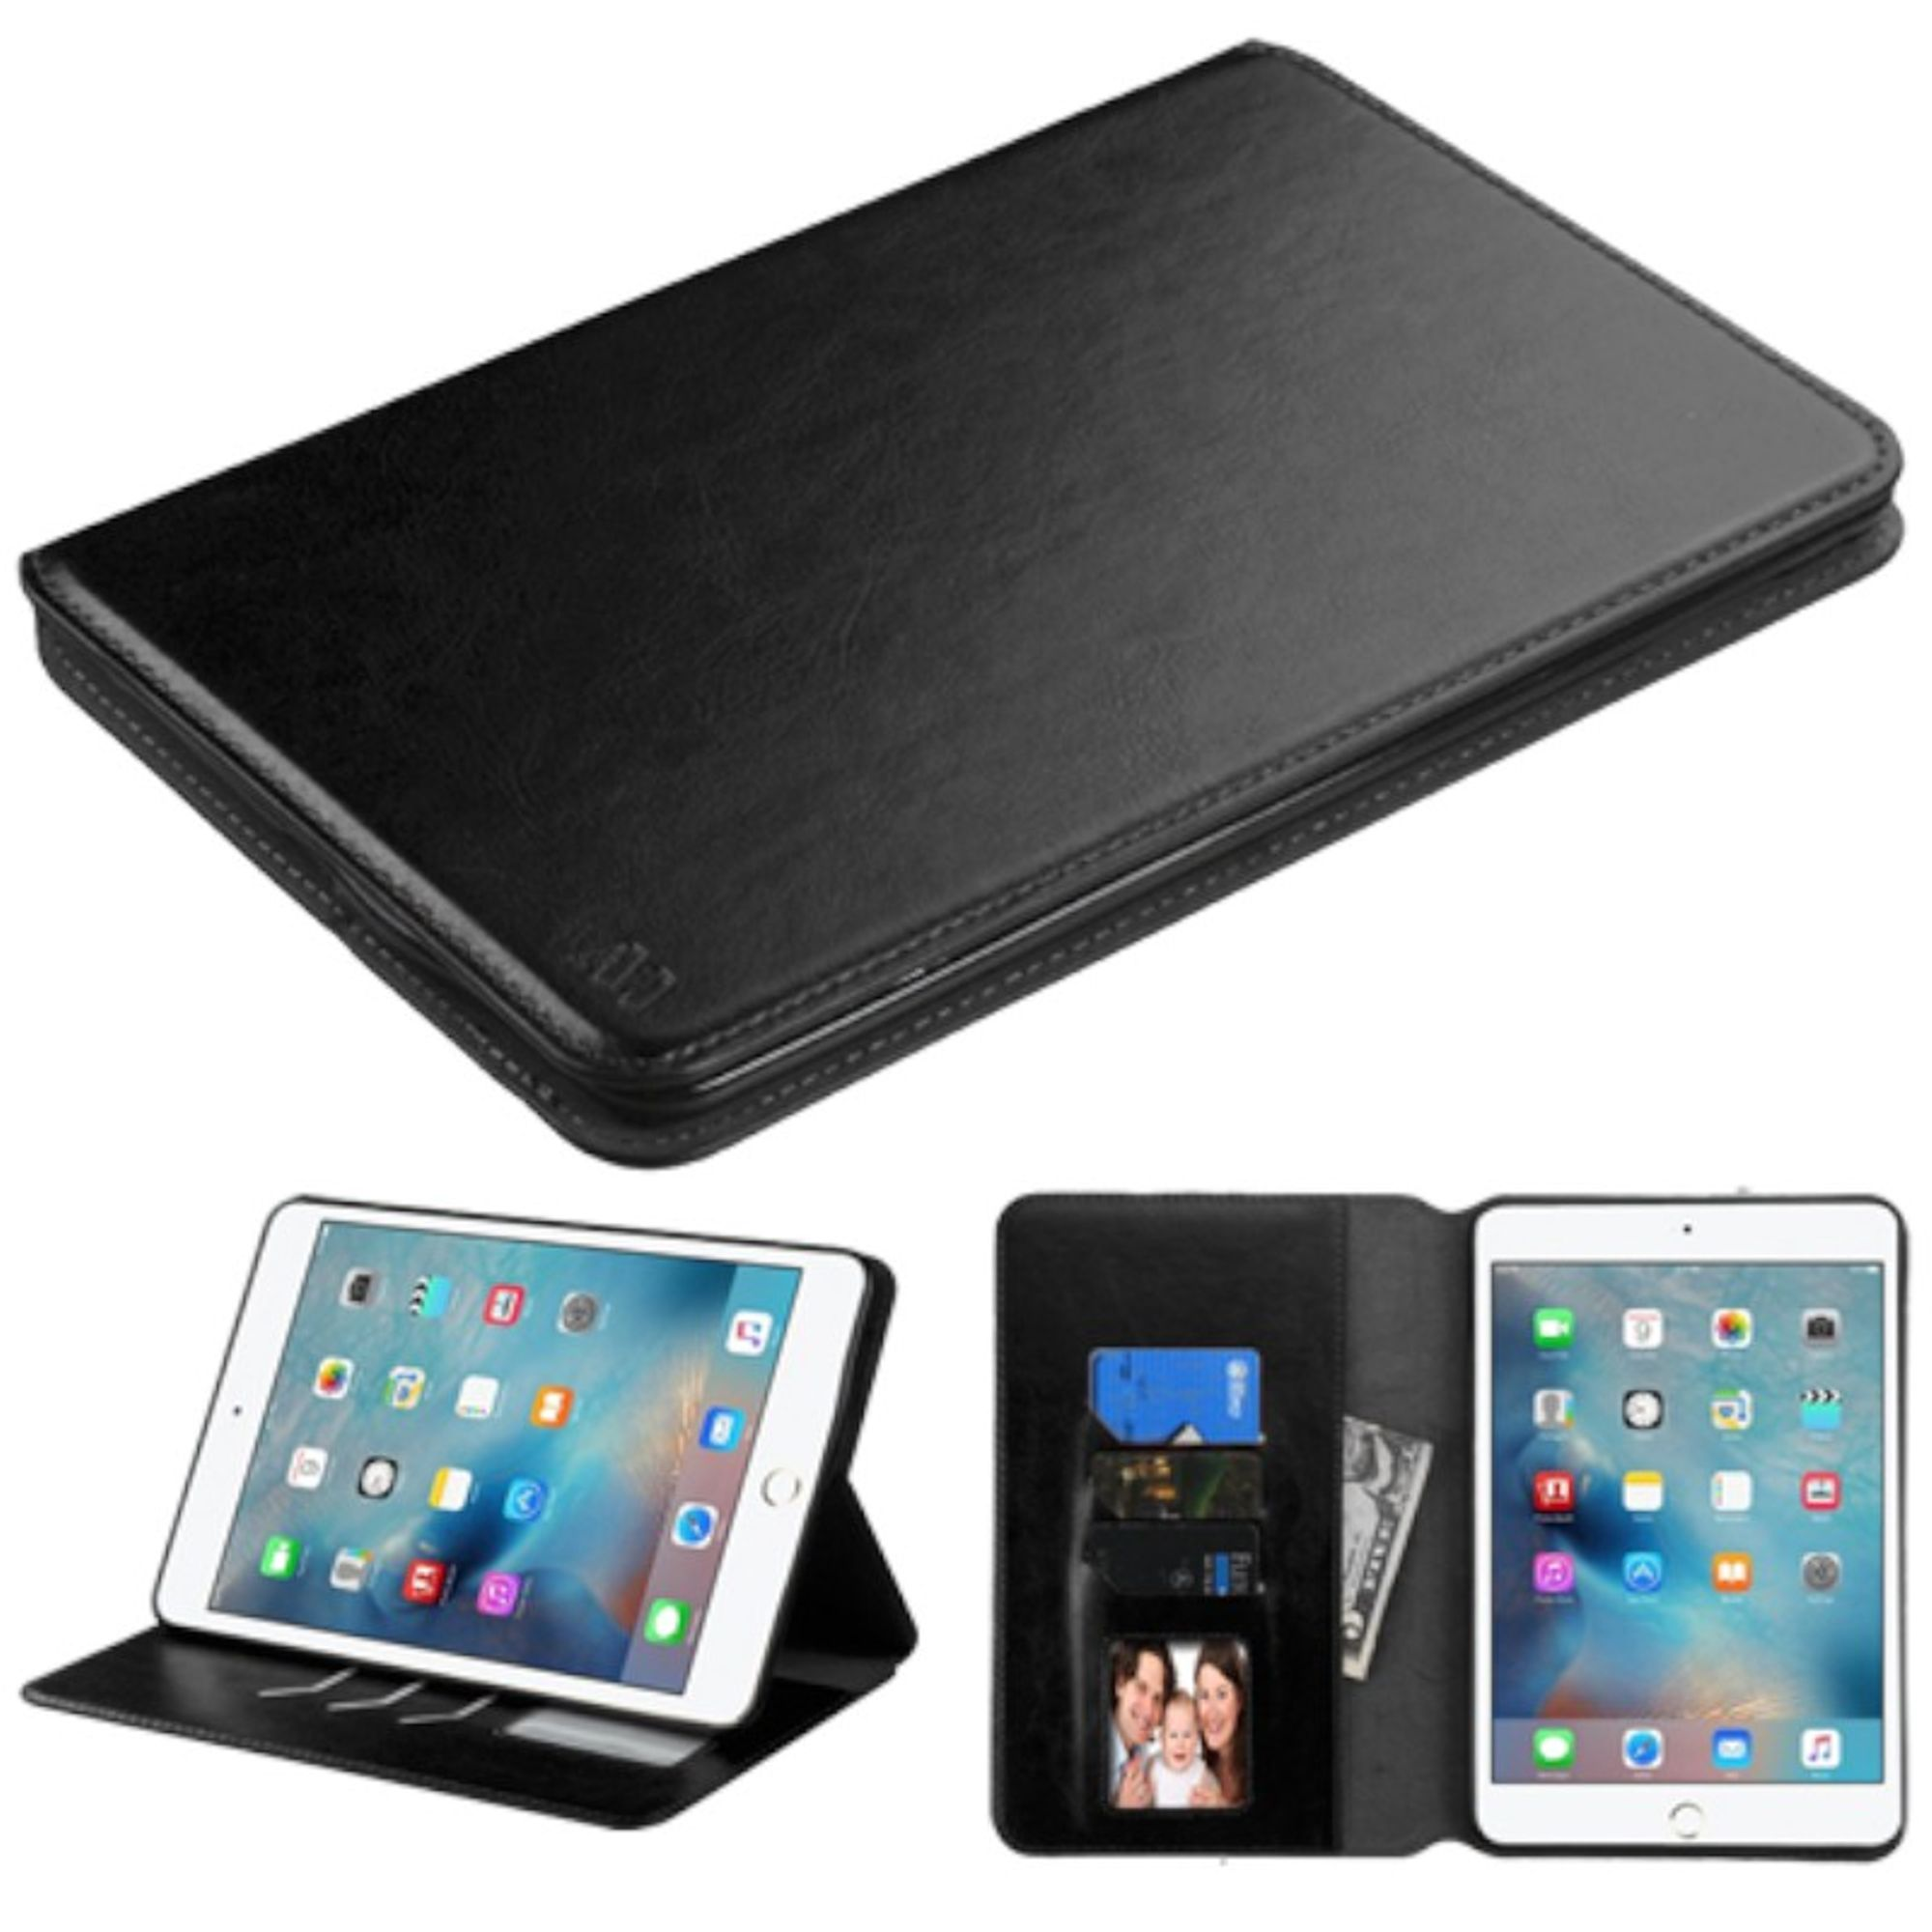 Insten Premium Slim fit Leather Stand Case for Apple iPad 4 Mini 4th Gen 2015 (with Card Slot Holder) Black